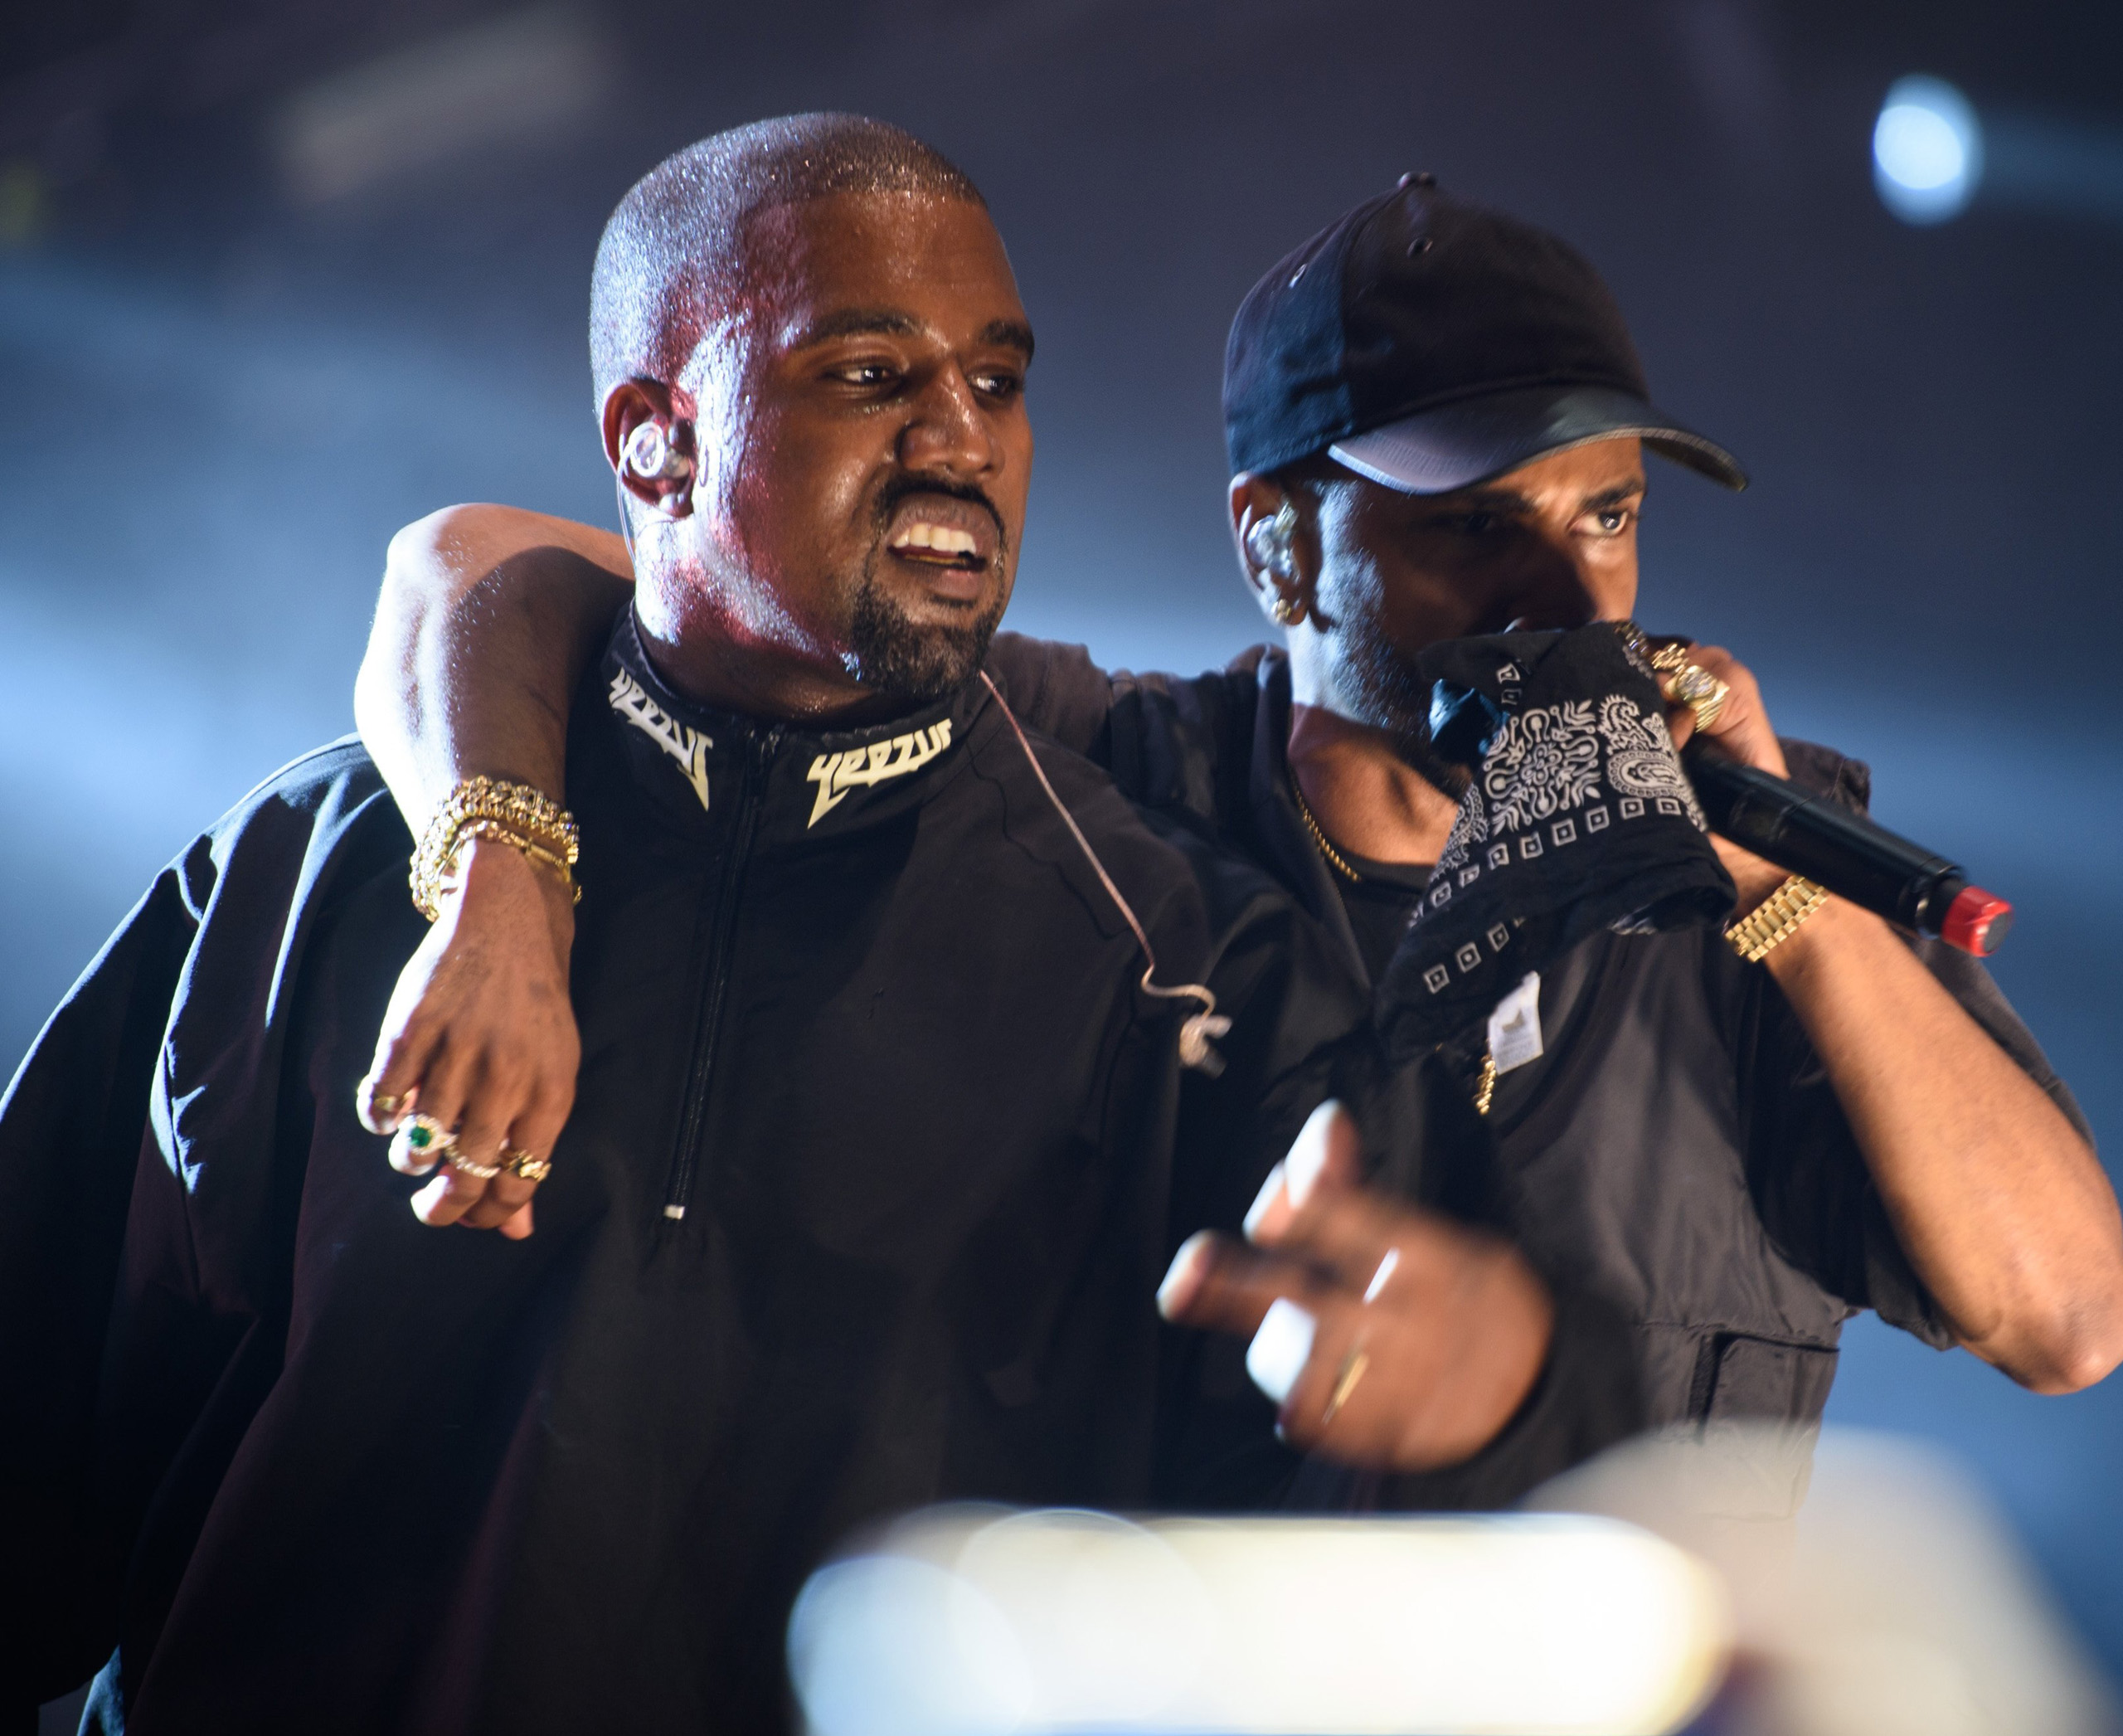 Kanye West (L)  and Big Sean (R) perform at the 2016 Hot 97 Summer Jam at MetLife Stadium in East Rutherford, New Jersey on June 5, 2016.